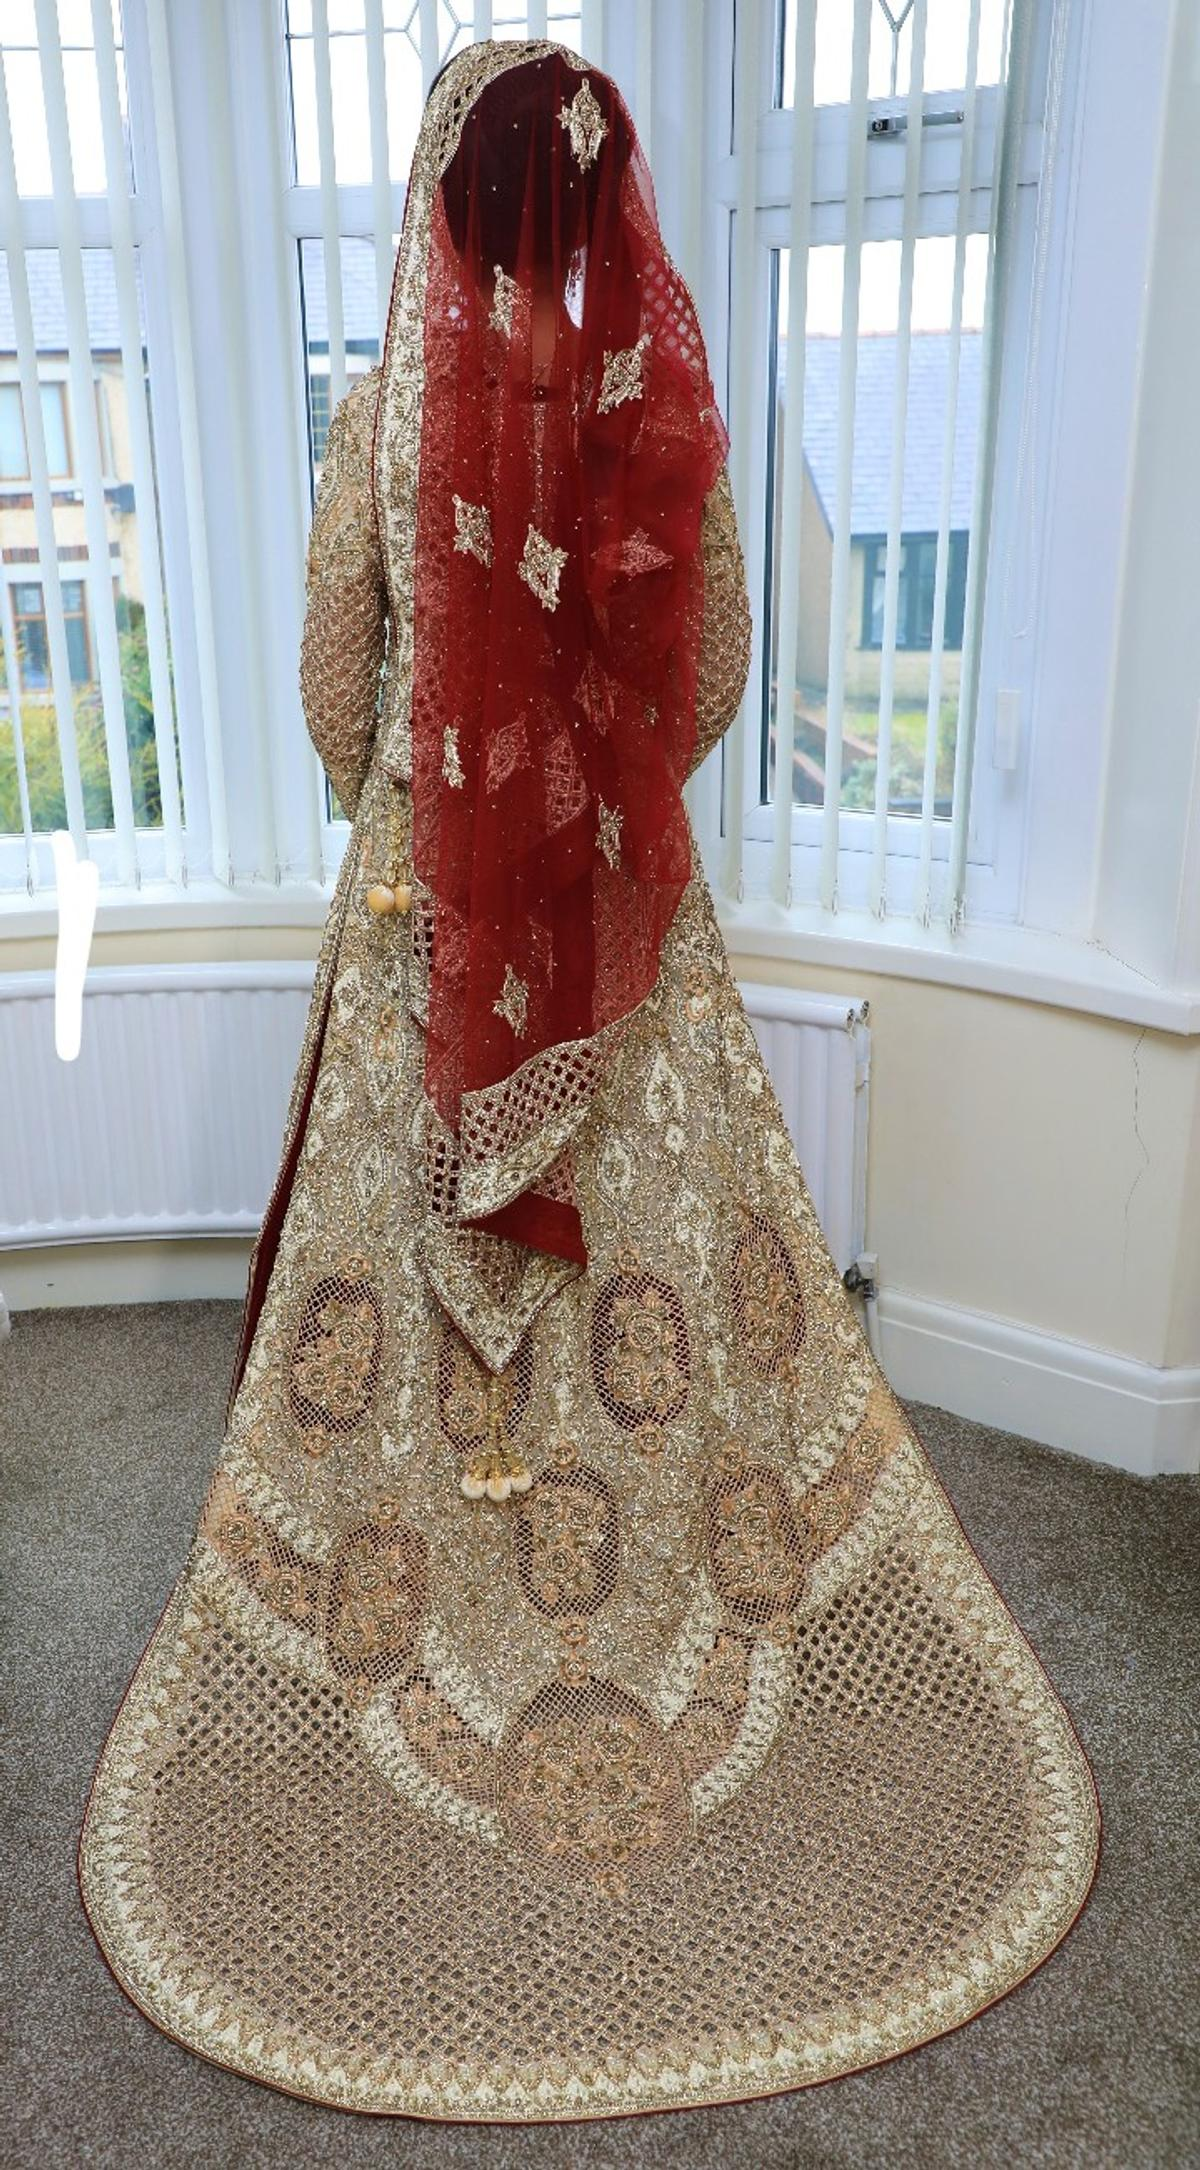 Asian Wedding Dress In Bolton For 1 000 00 For Sale Shpock